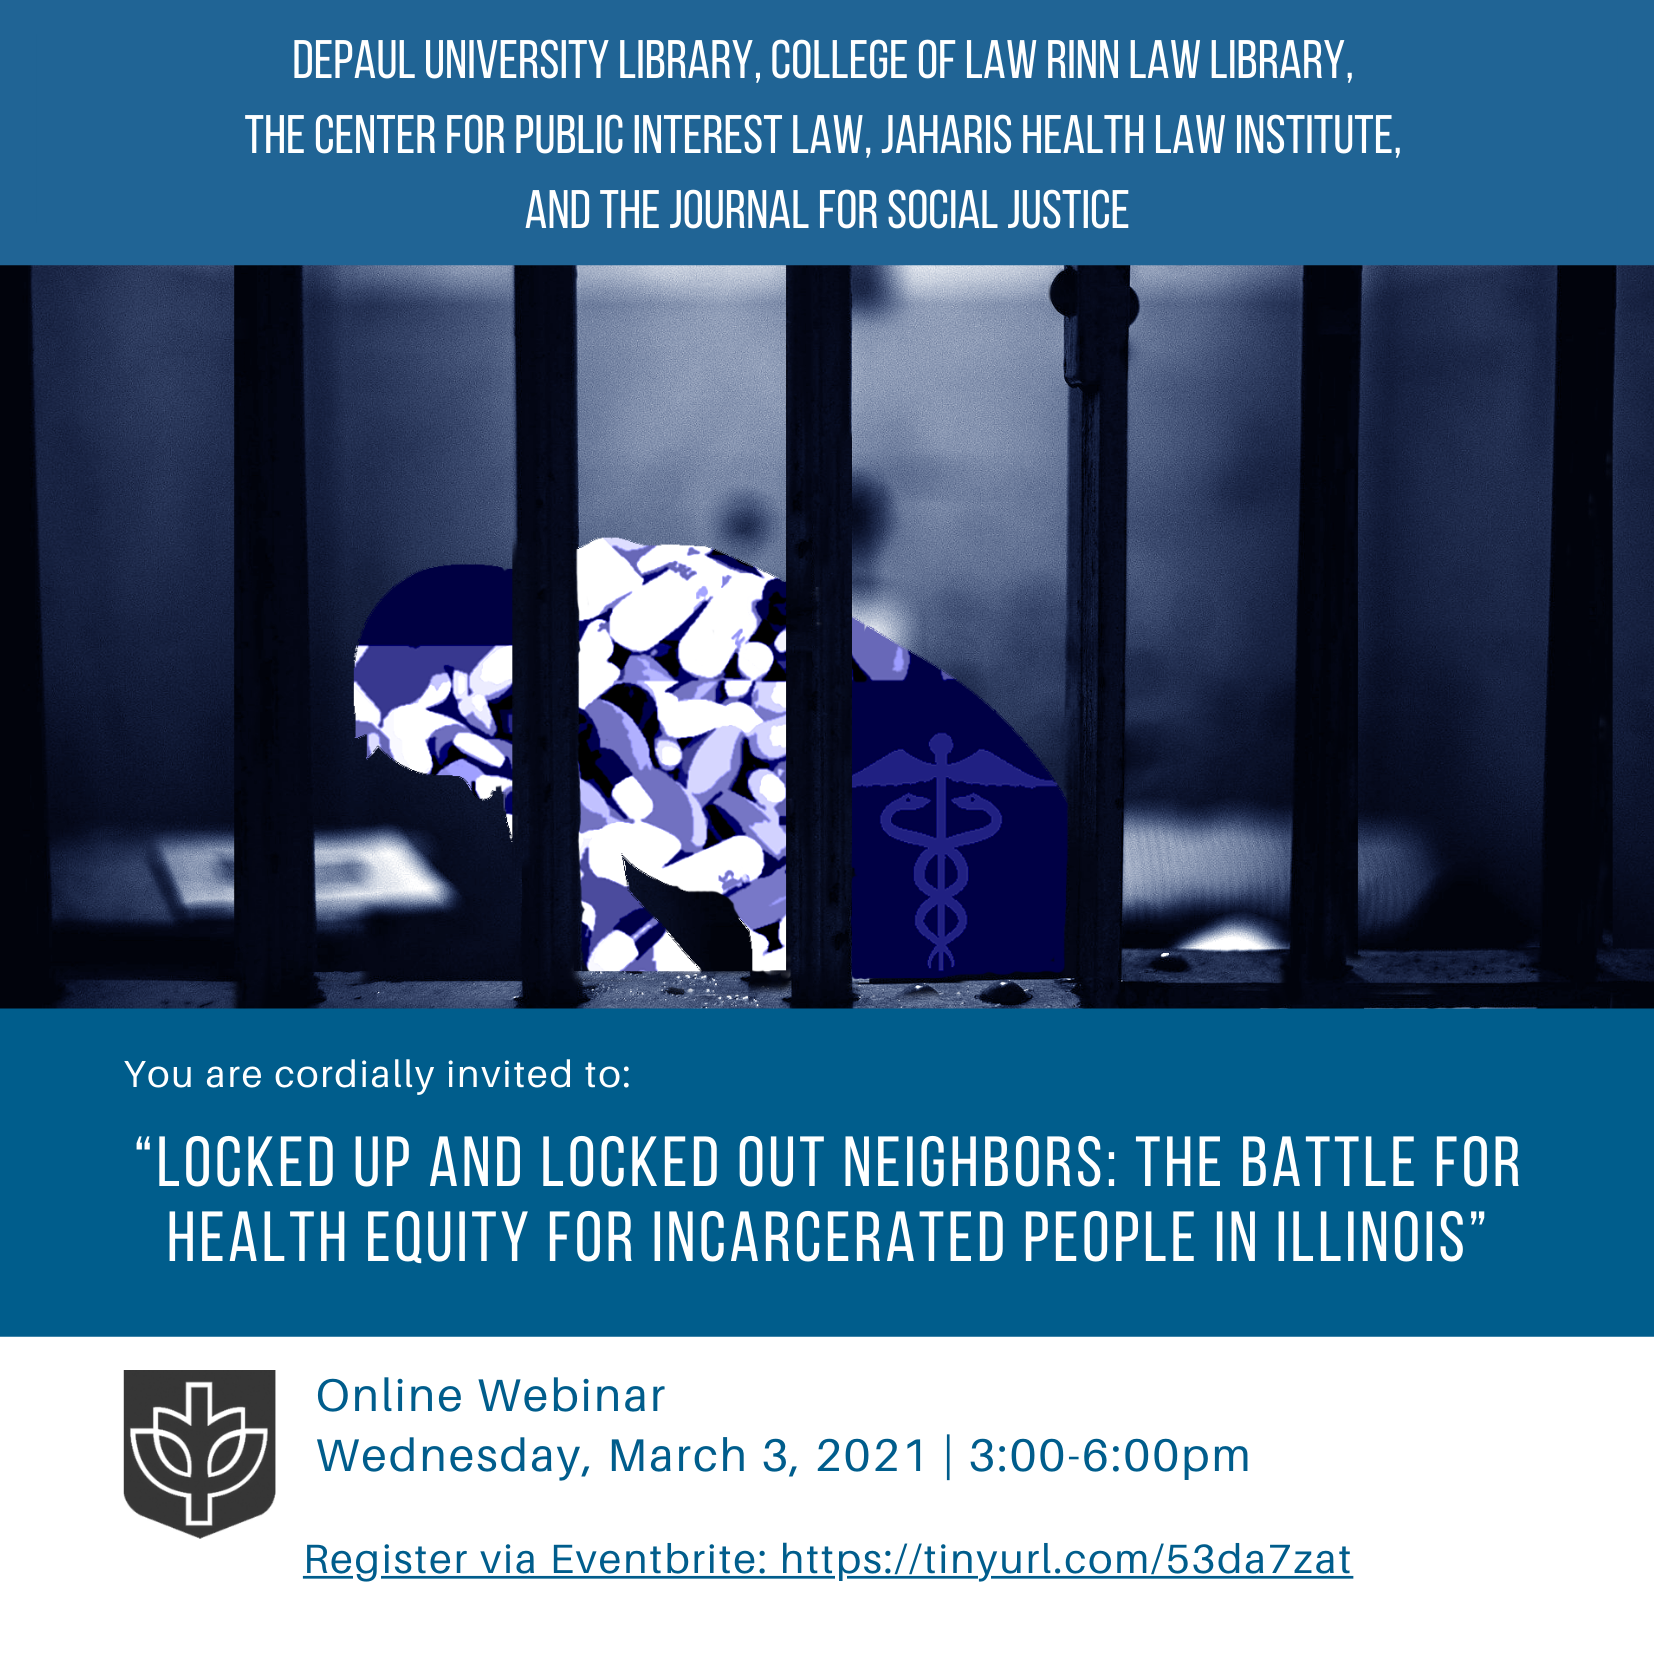 Locked Up and Locked Out Event Invite